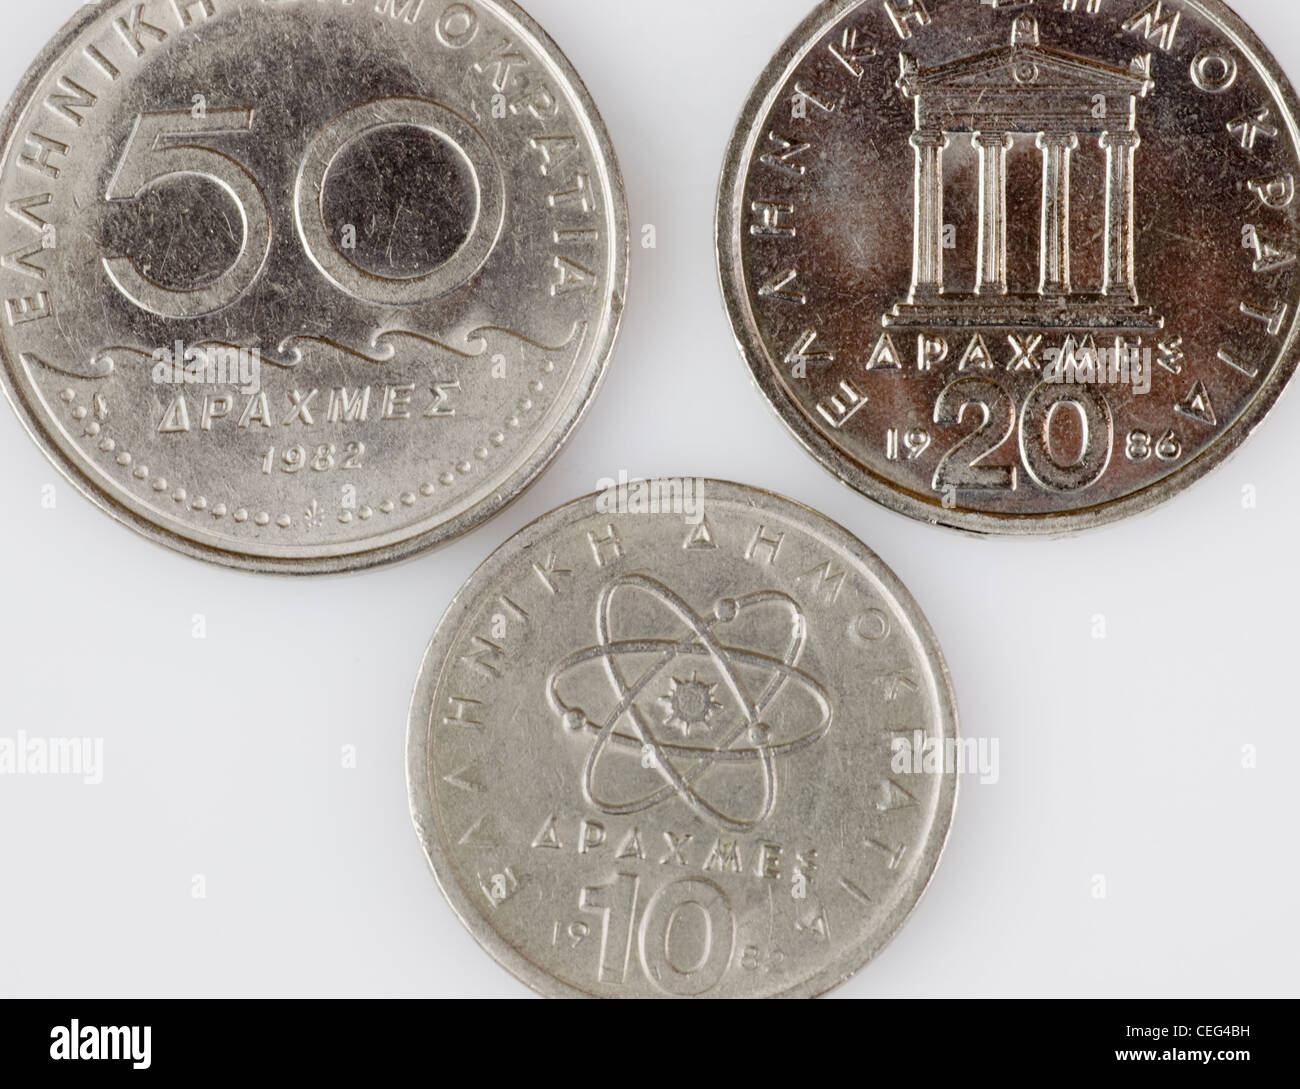 Drachma, former Greek currency coins Stock Photo